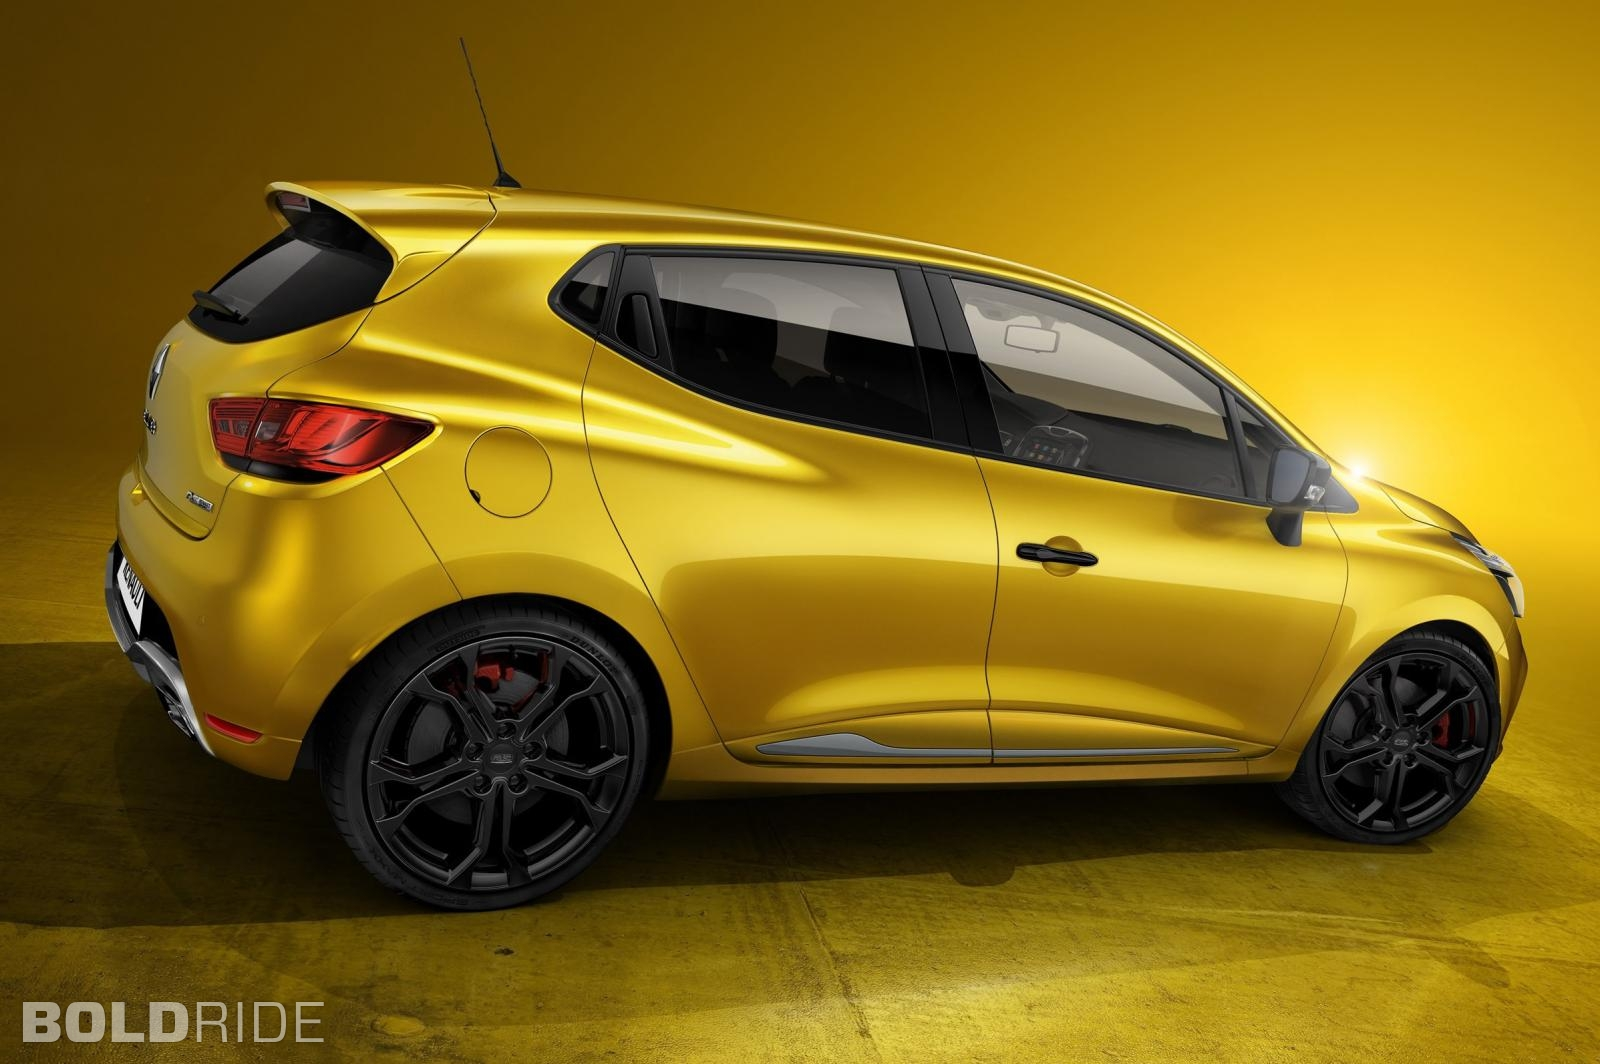 2019 Renault Clio RS 200 photo - 6